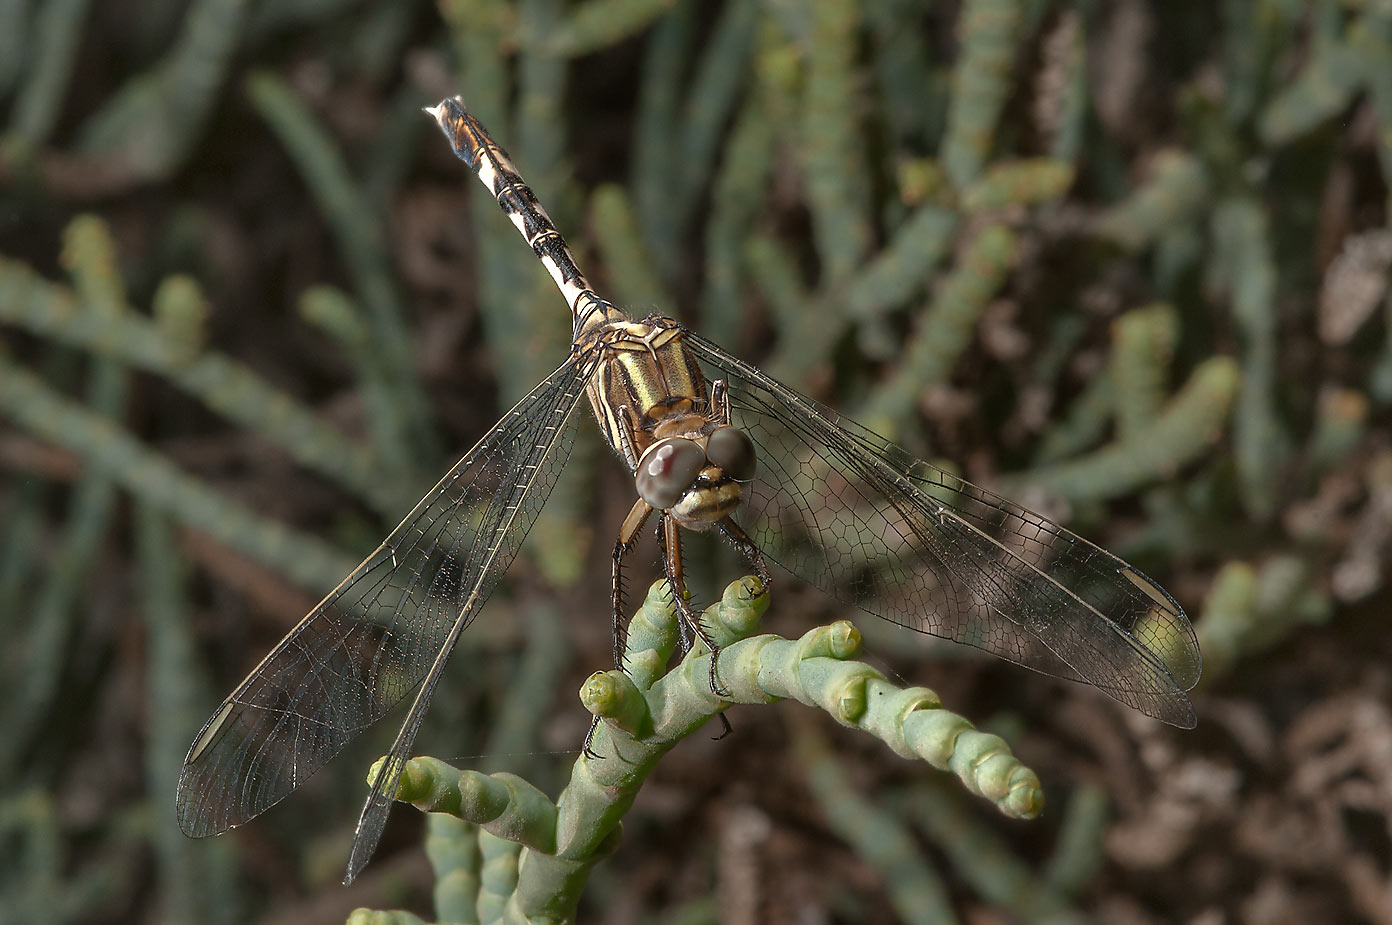 Dragonfly on saltwort in Safliya Island near Doha. Qatar